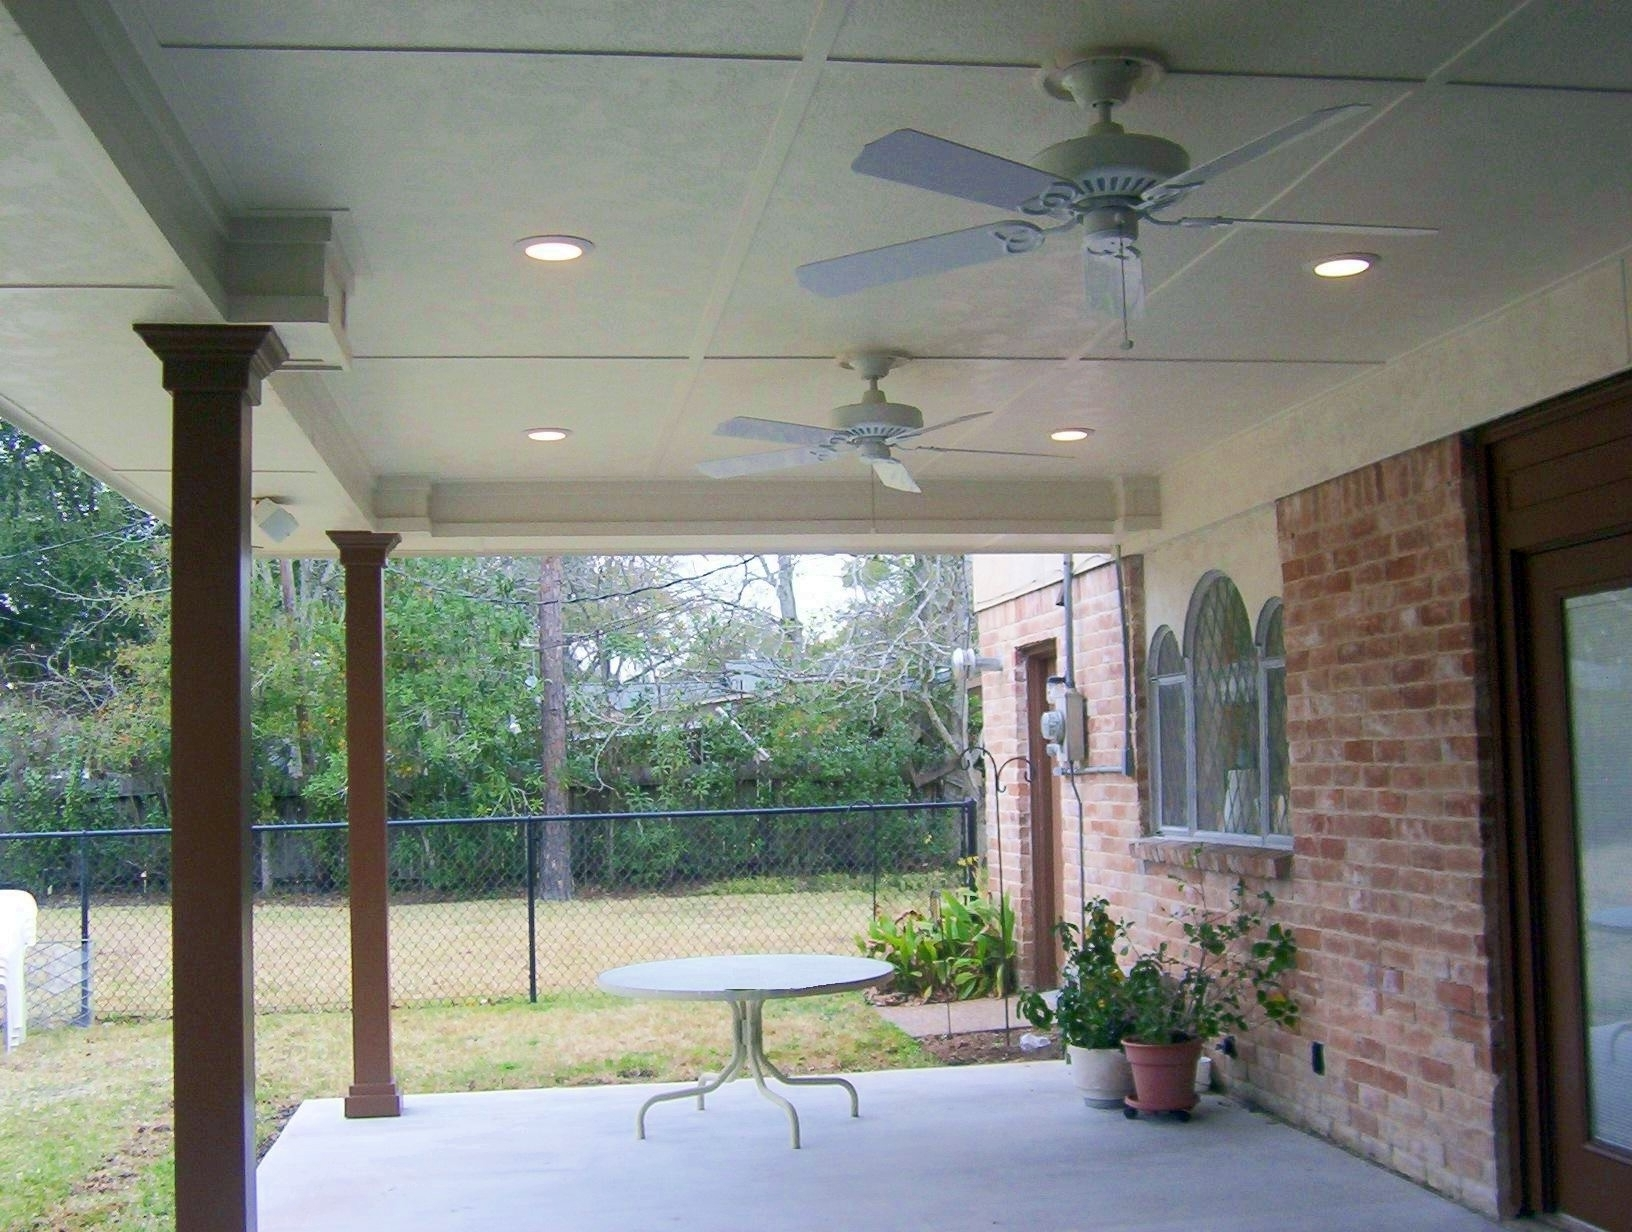 Fabulous Outdoor Patio Ceiling Fans Cool Outdoor Ceiling Fans Patio For Latest Outdoor Porch Ceiling Fans With Lights (Gallery 11 of 20)